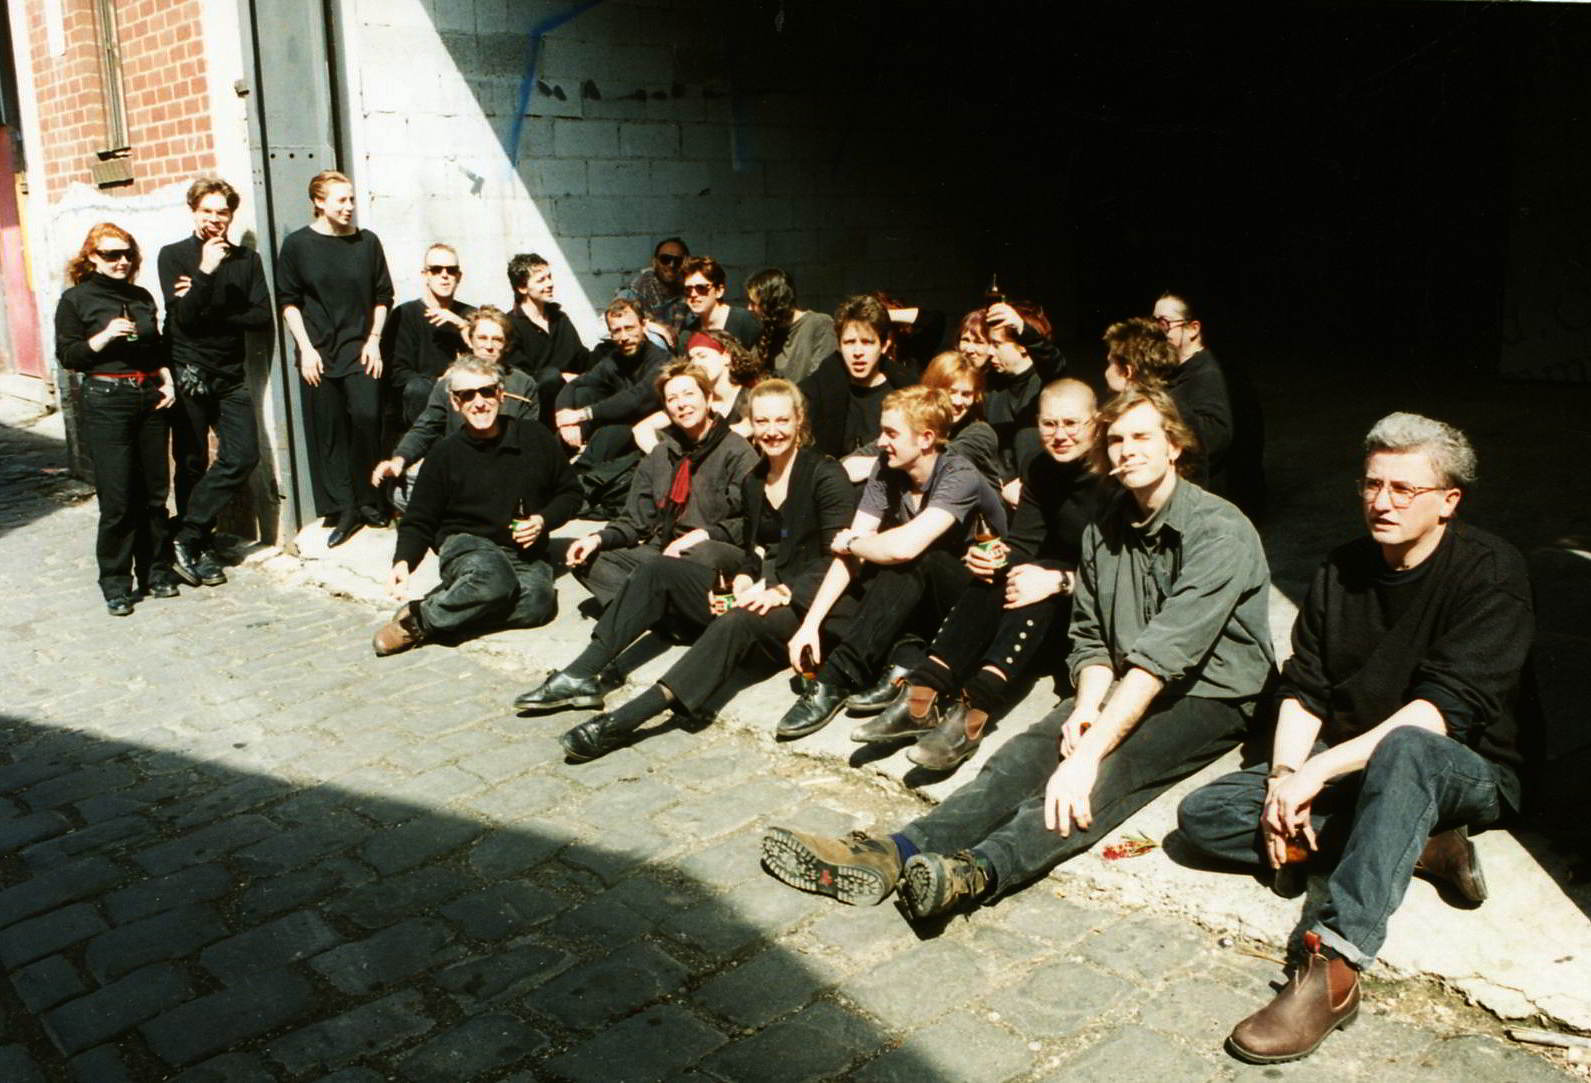 group portrait of performers resting after street show